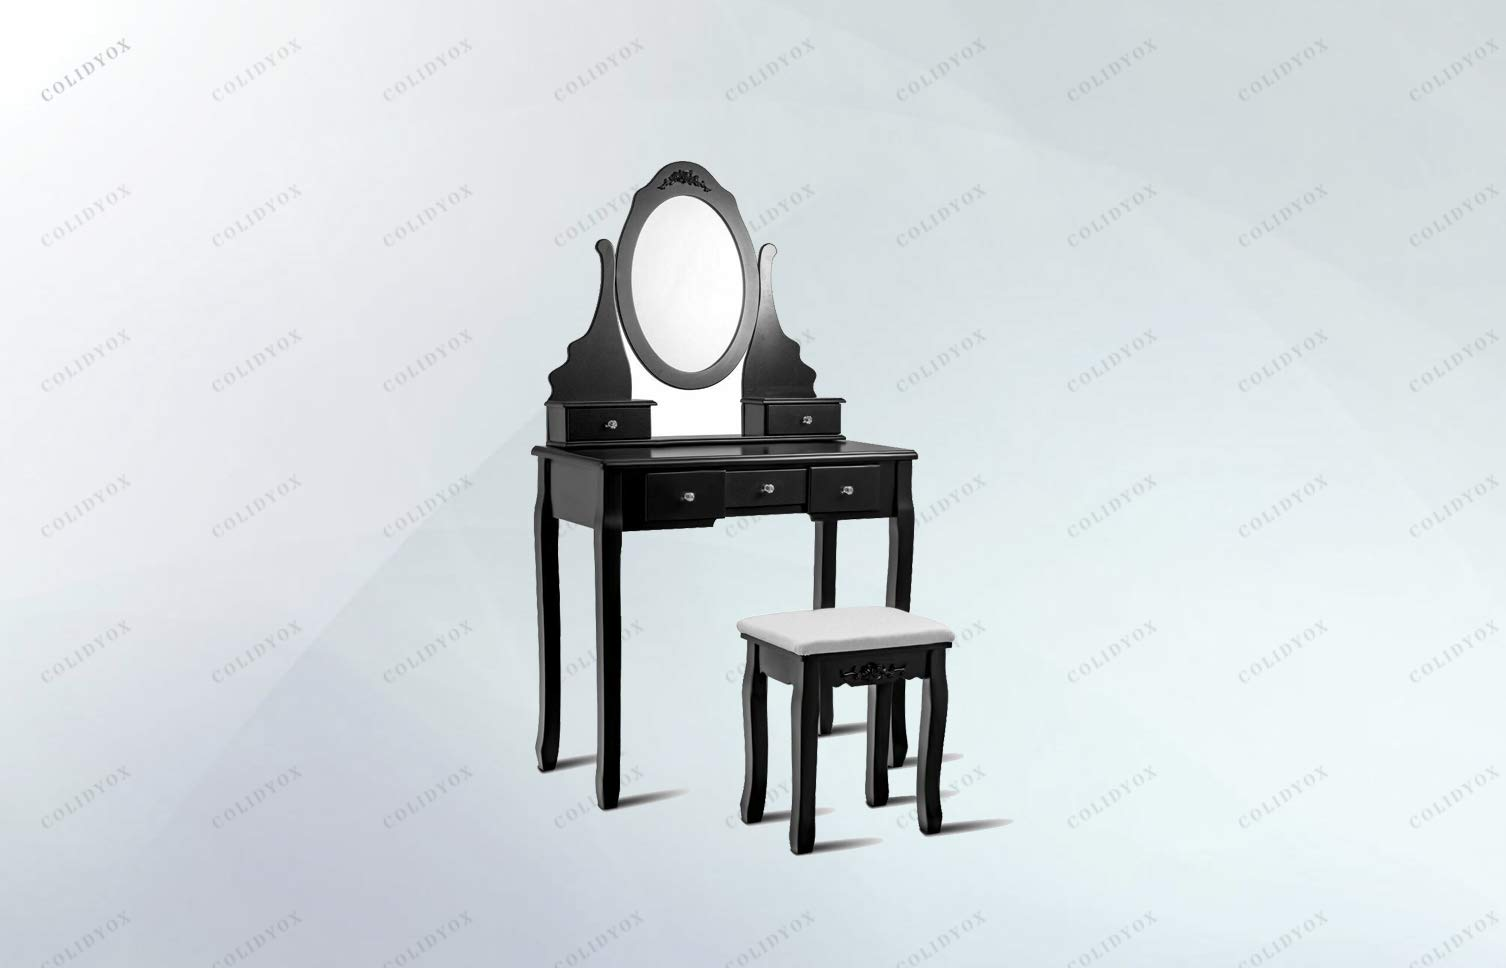 COLIDYOX>>>Vanity Jewelry Wooden Makeup Dressing Table are You Looking for Forward to Owning a Wonderful Dressing Table Set Come and Have a Look at Our Glamorous Dressing Table Set! It Will be